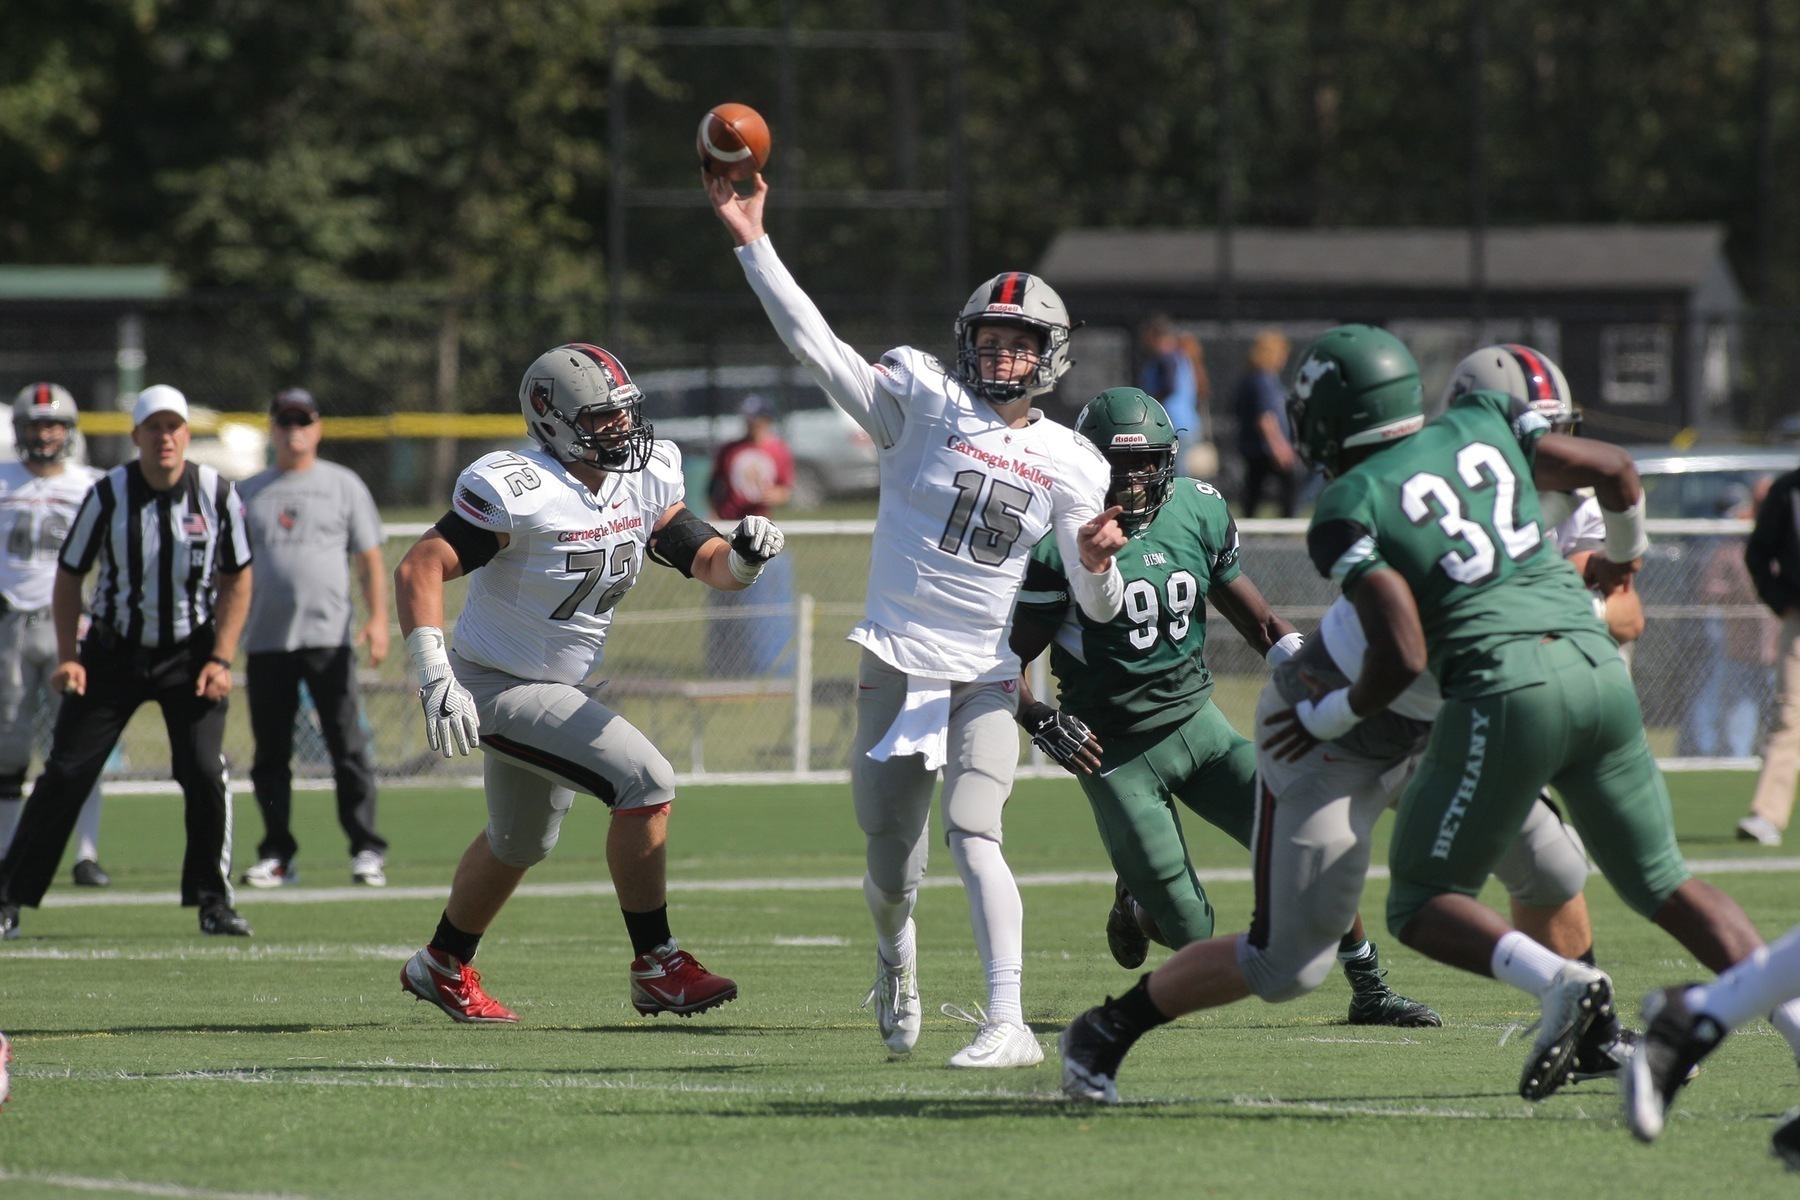 Junior quarterback Alex Cline identifies an open target. The Tartans dominated on offense and defense. (credit: Courtesy of CMU Athletics)